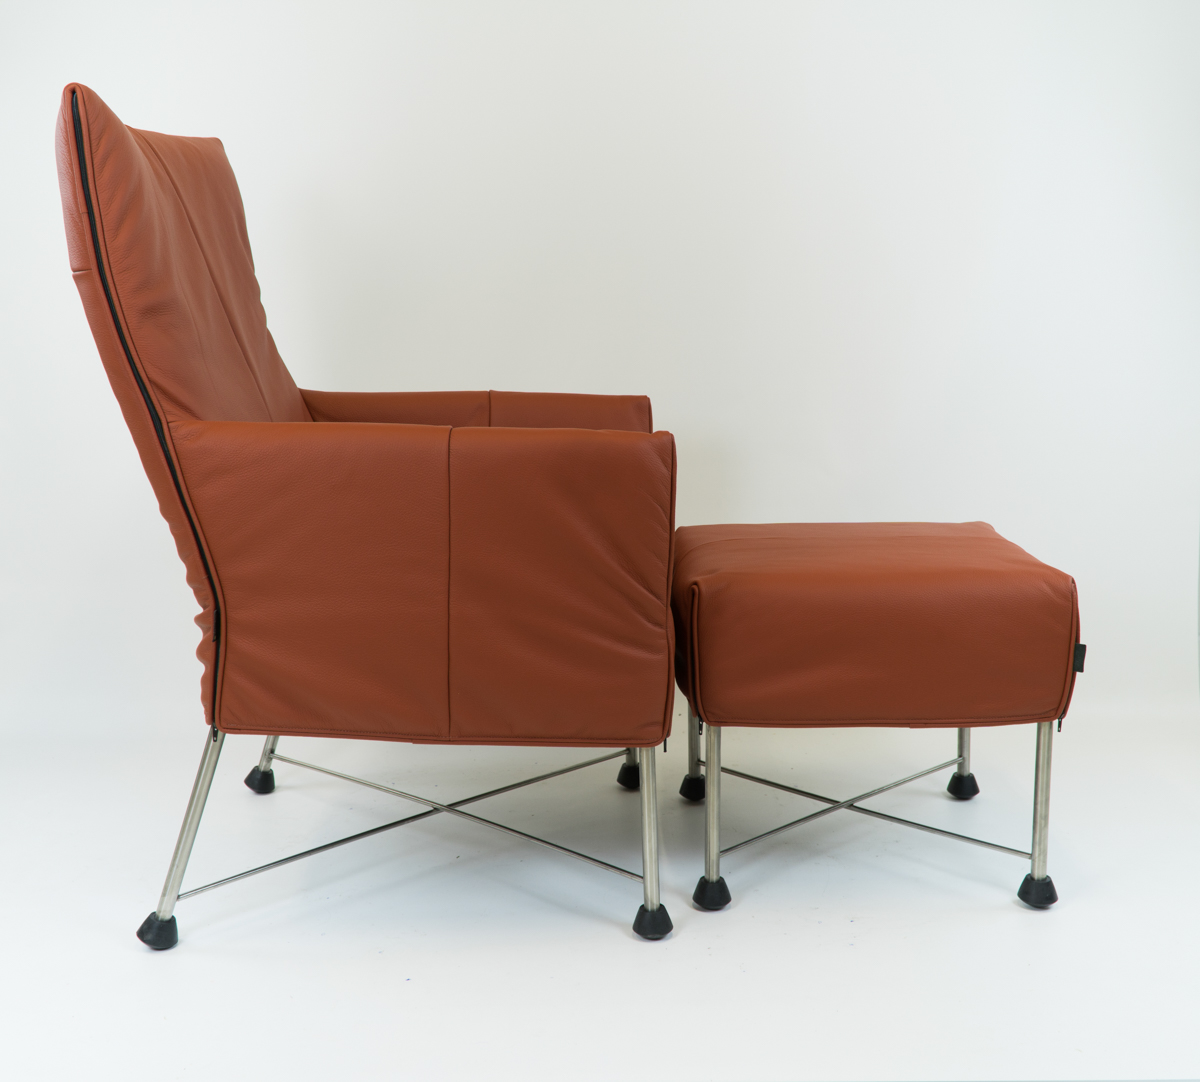 Fauteuil Charly Montis.Montis Charly Natur Hocker Inclusief Rvs Frames Guldeling